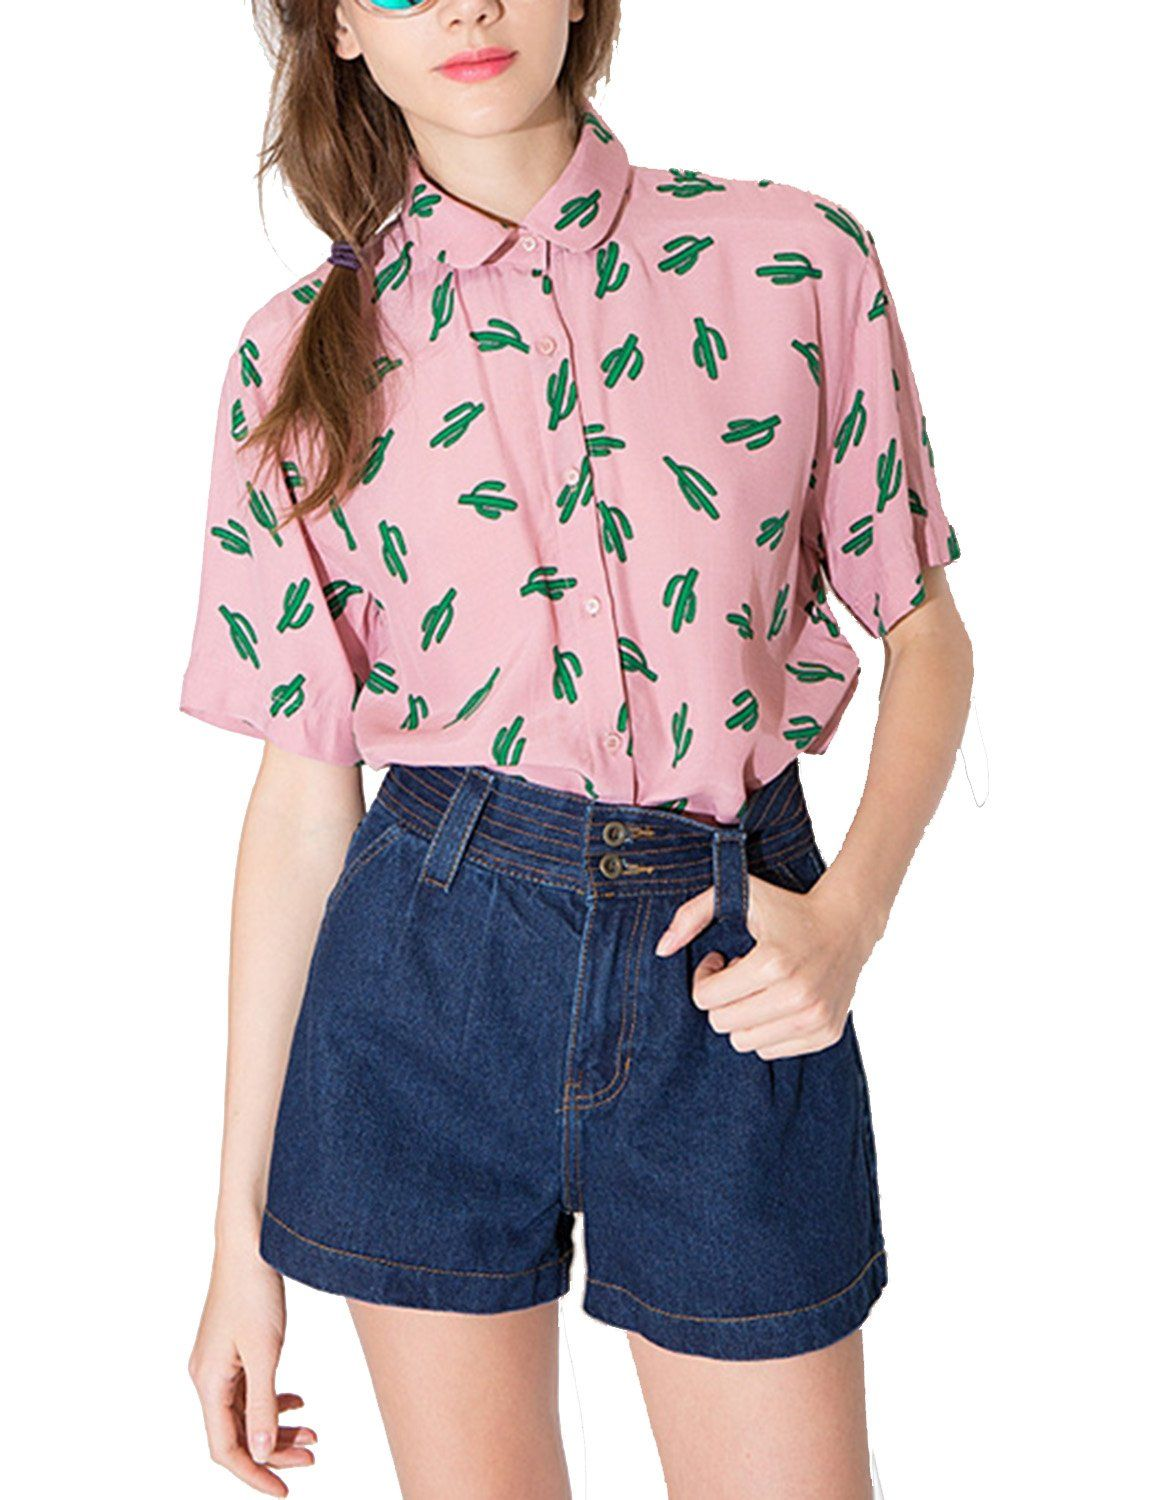 Amazon.com: haoduoyi Womens Sweet Preppy Style Cactus Printed Dollar Collar T-shirt: Clothing